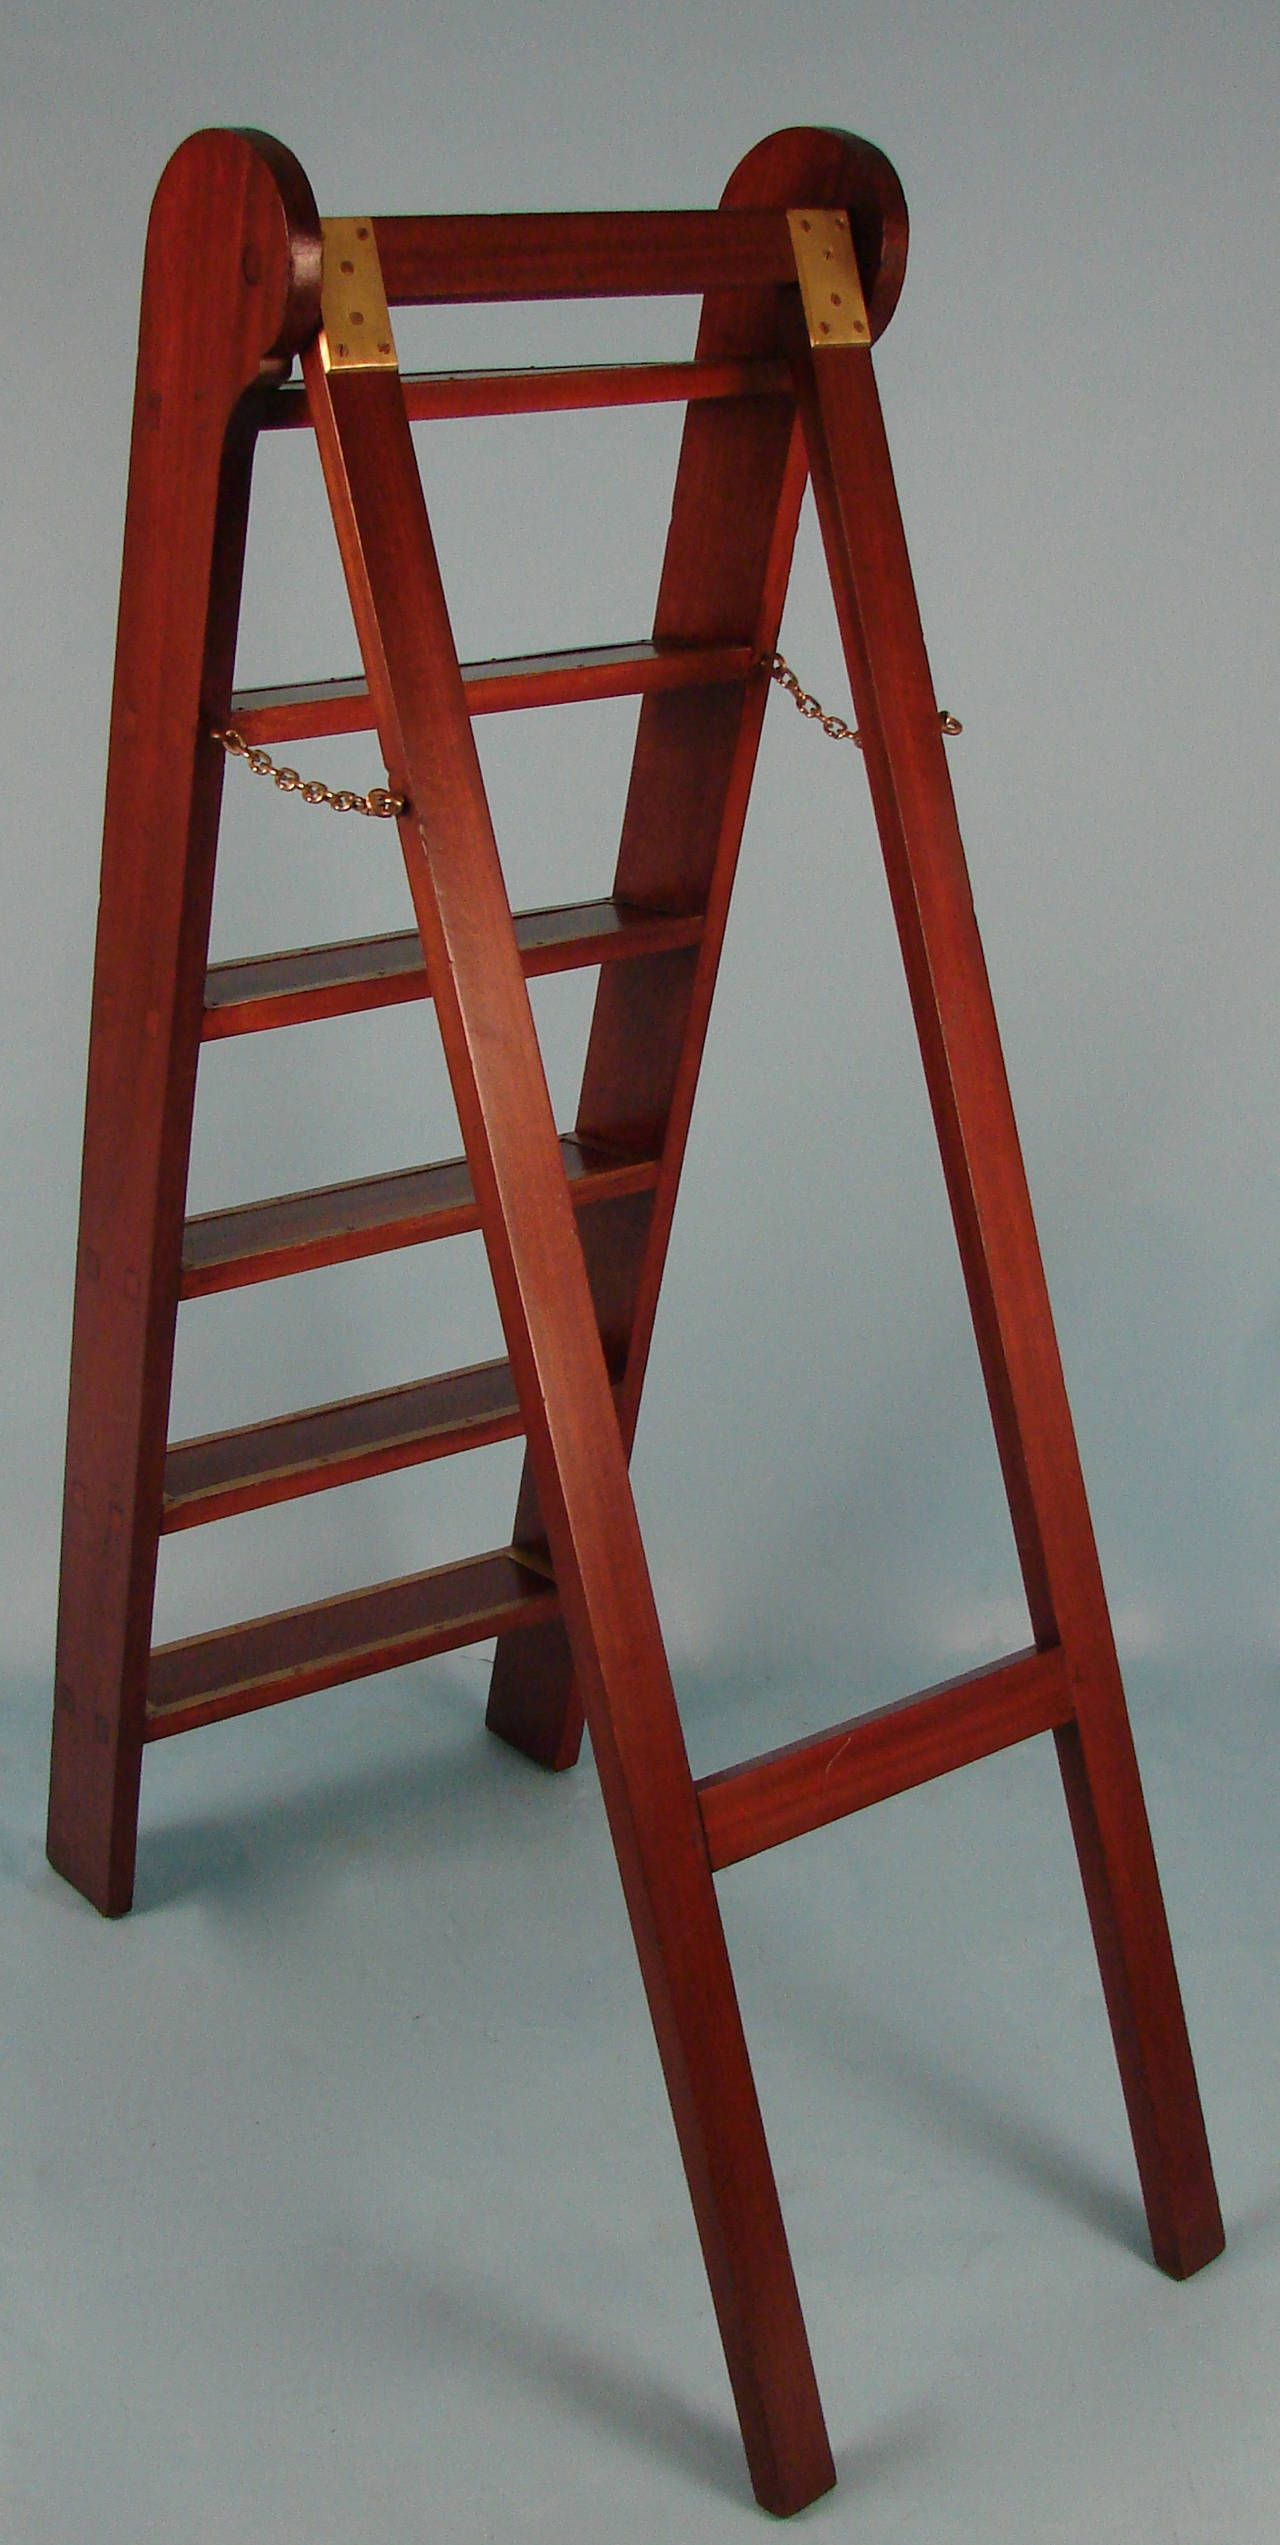 English Mahogany Brass Bound Library Ladder From A Unique Collection Of Antique And Modern Ladders At Https Www 1stdibs Com Furniture More Furnit Dom Derevo